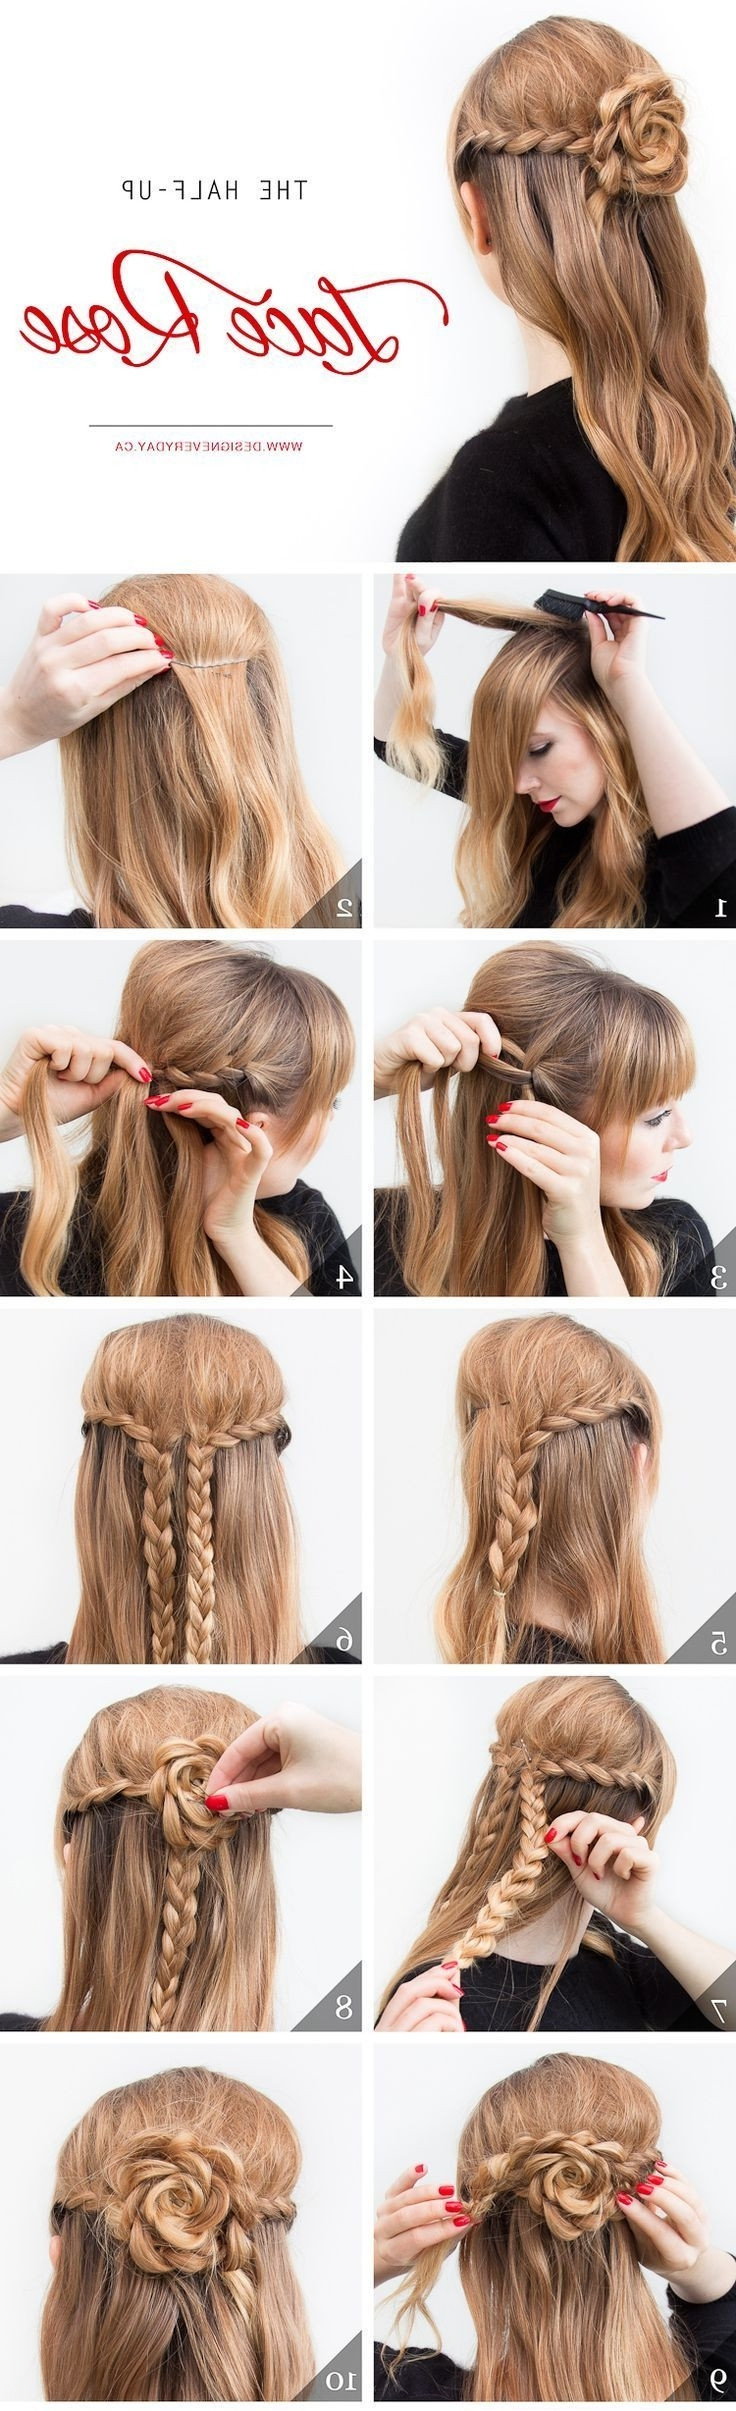 Best ideas about Easy Hairstyles For Church . Save or Pin Hairstyles For Church Easy Now.